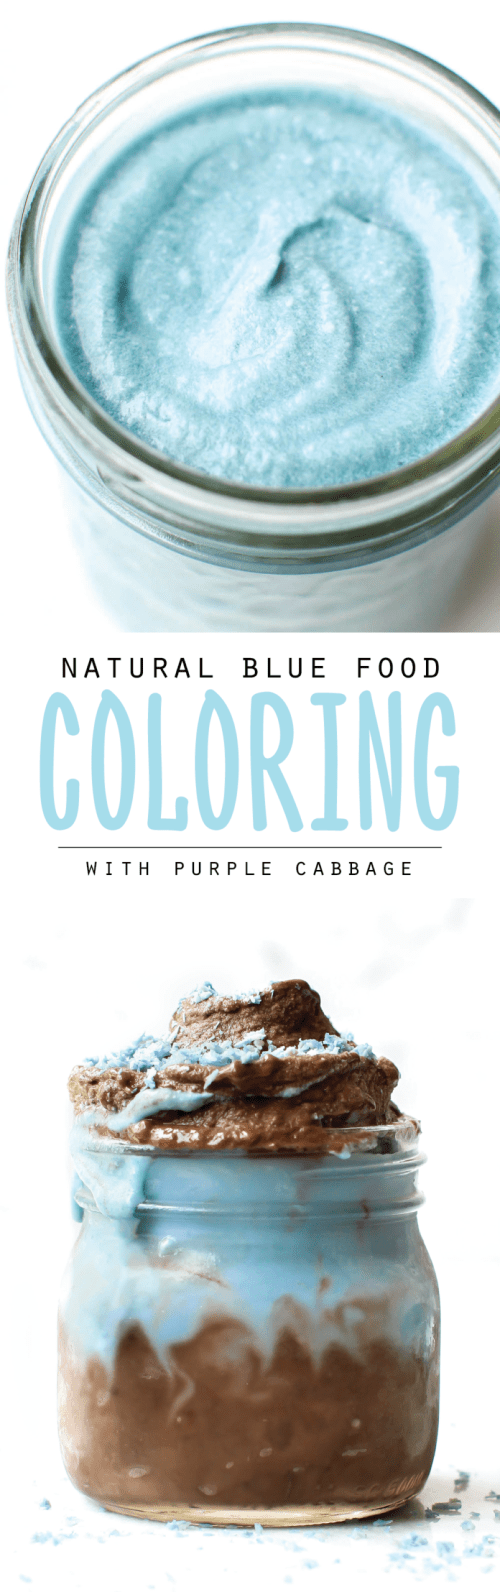 How To: Natural Blue Food Coloring with Red Cabbage {VIDEO}